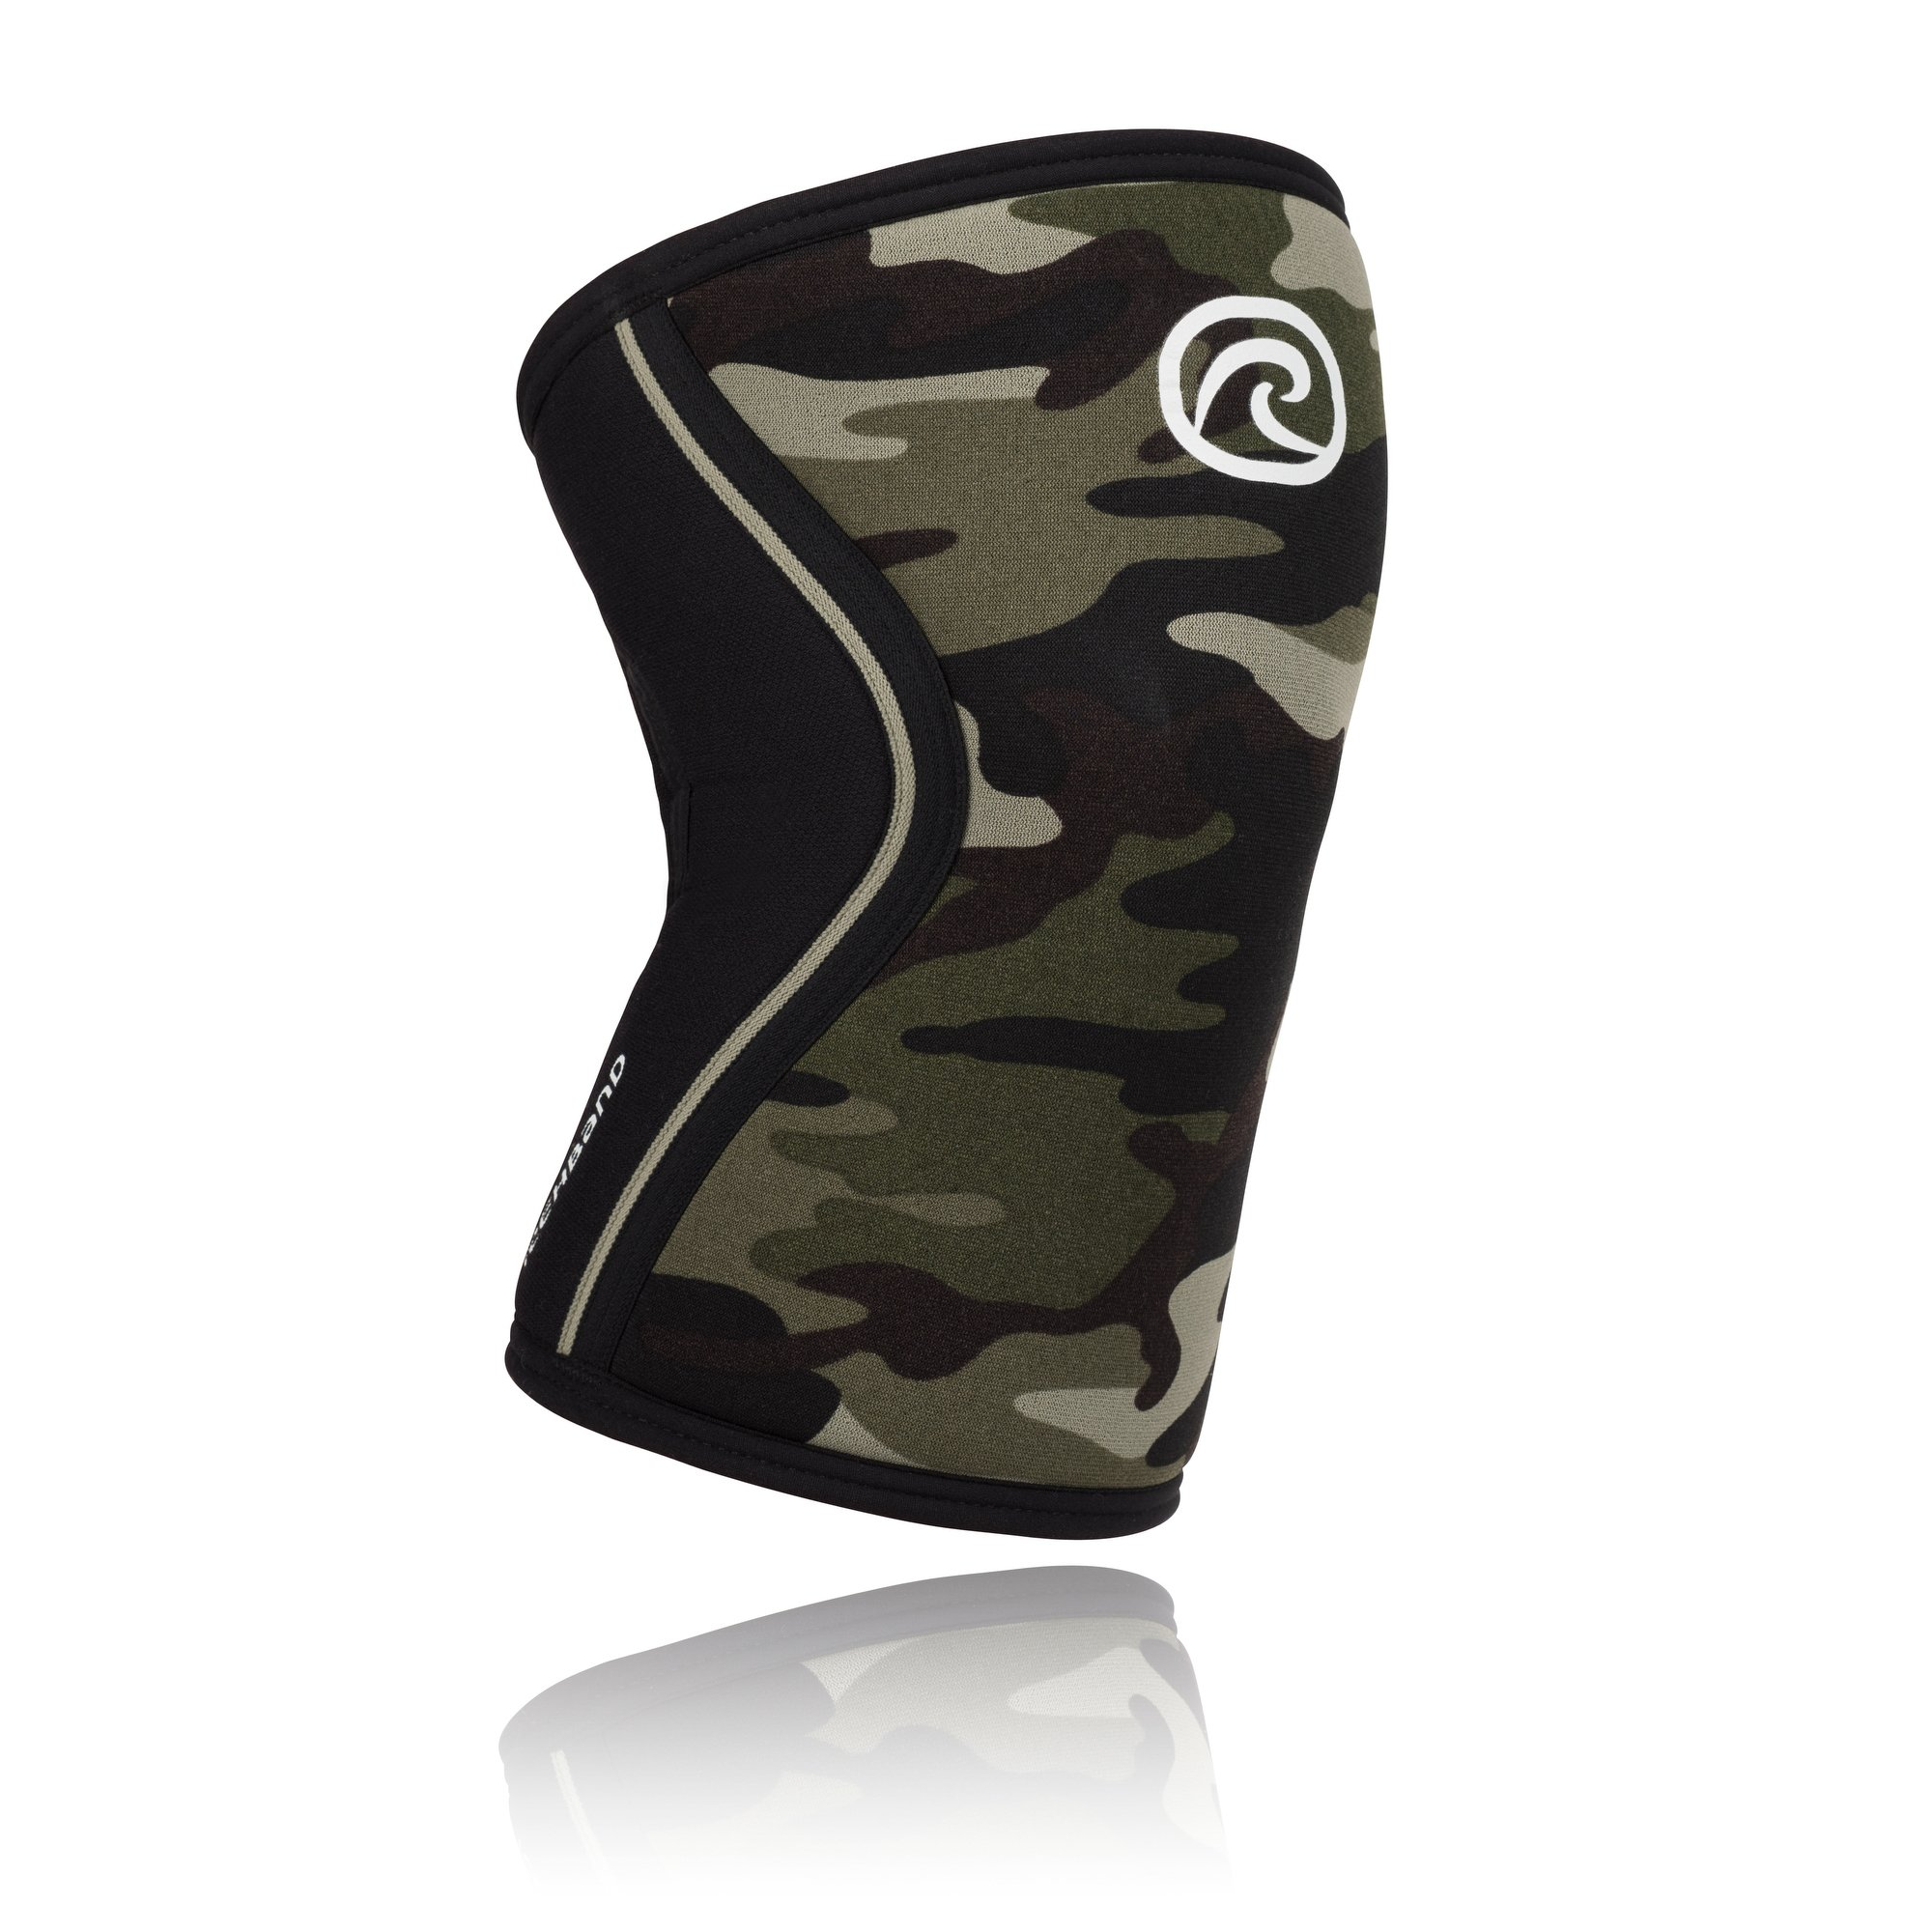 Rehband Rx Knee Support 7mm - X-Small - Camo - Expand Your Movement + Cross Training Potential - Knee Sleeve for Fitness - Feel Stronger + More Secure - Relieve Strain - 1 Sleeve